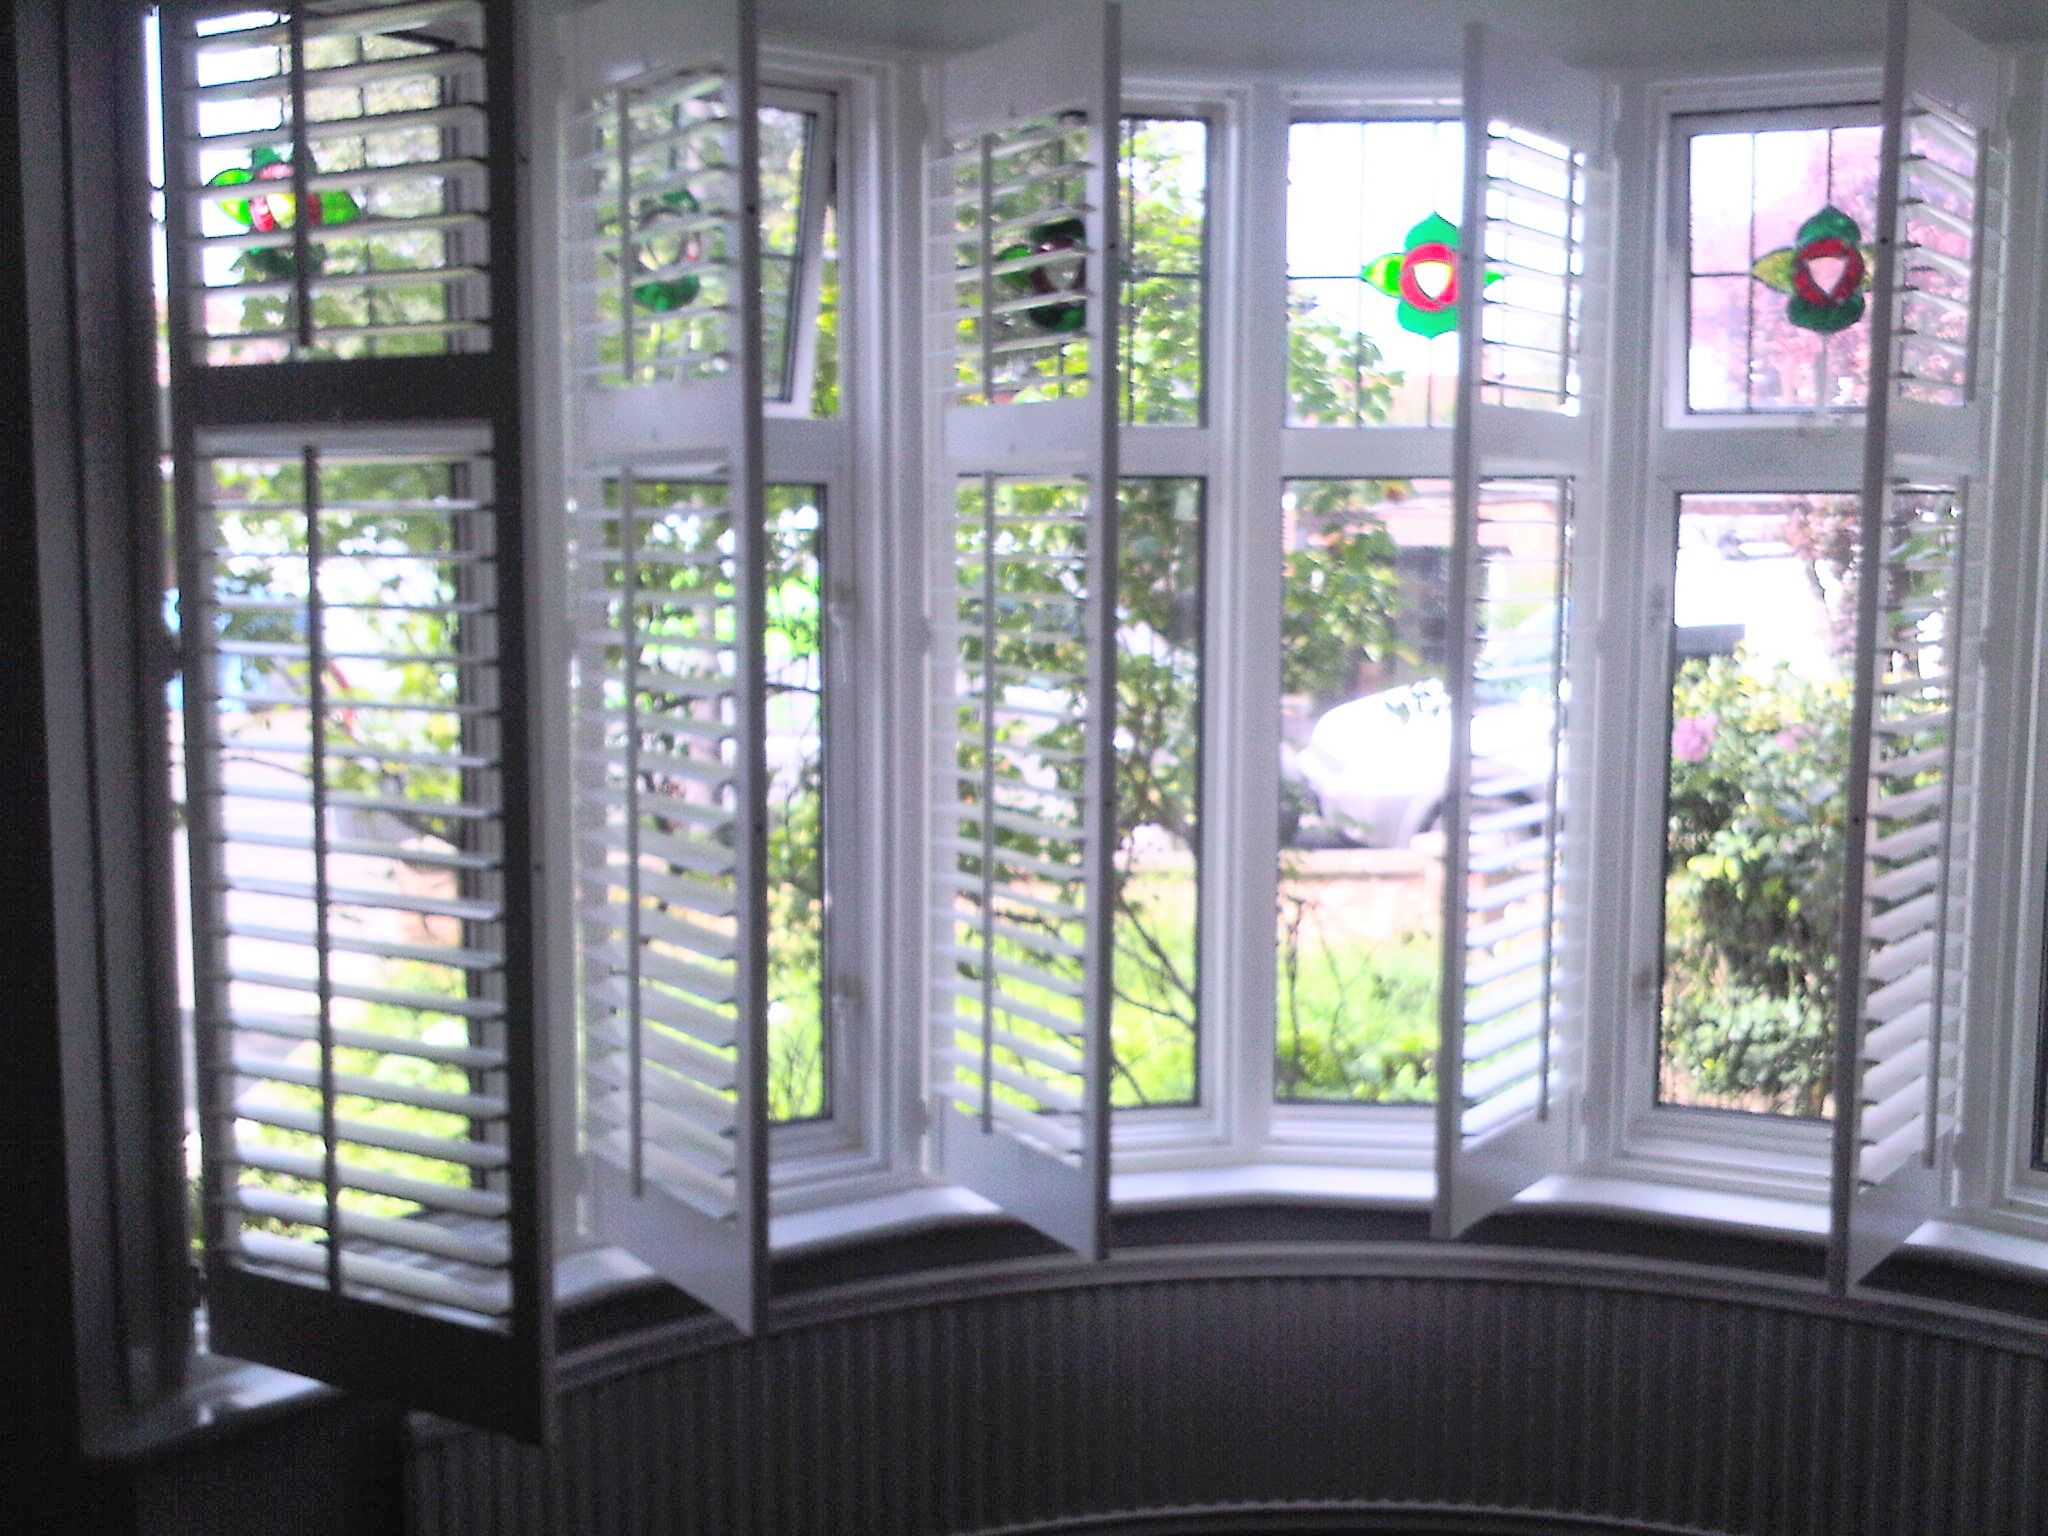 Bay window interior wooden window shutters from long for Bay window interior